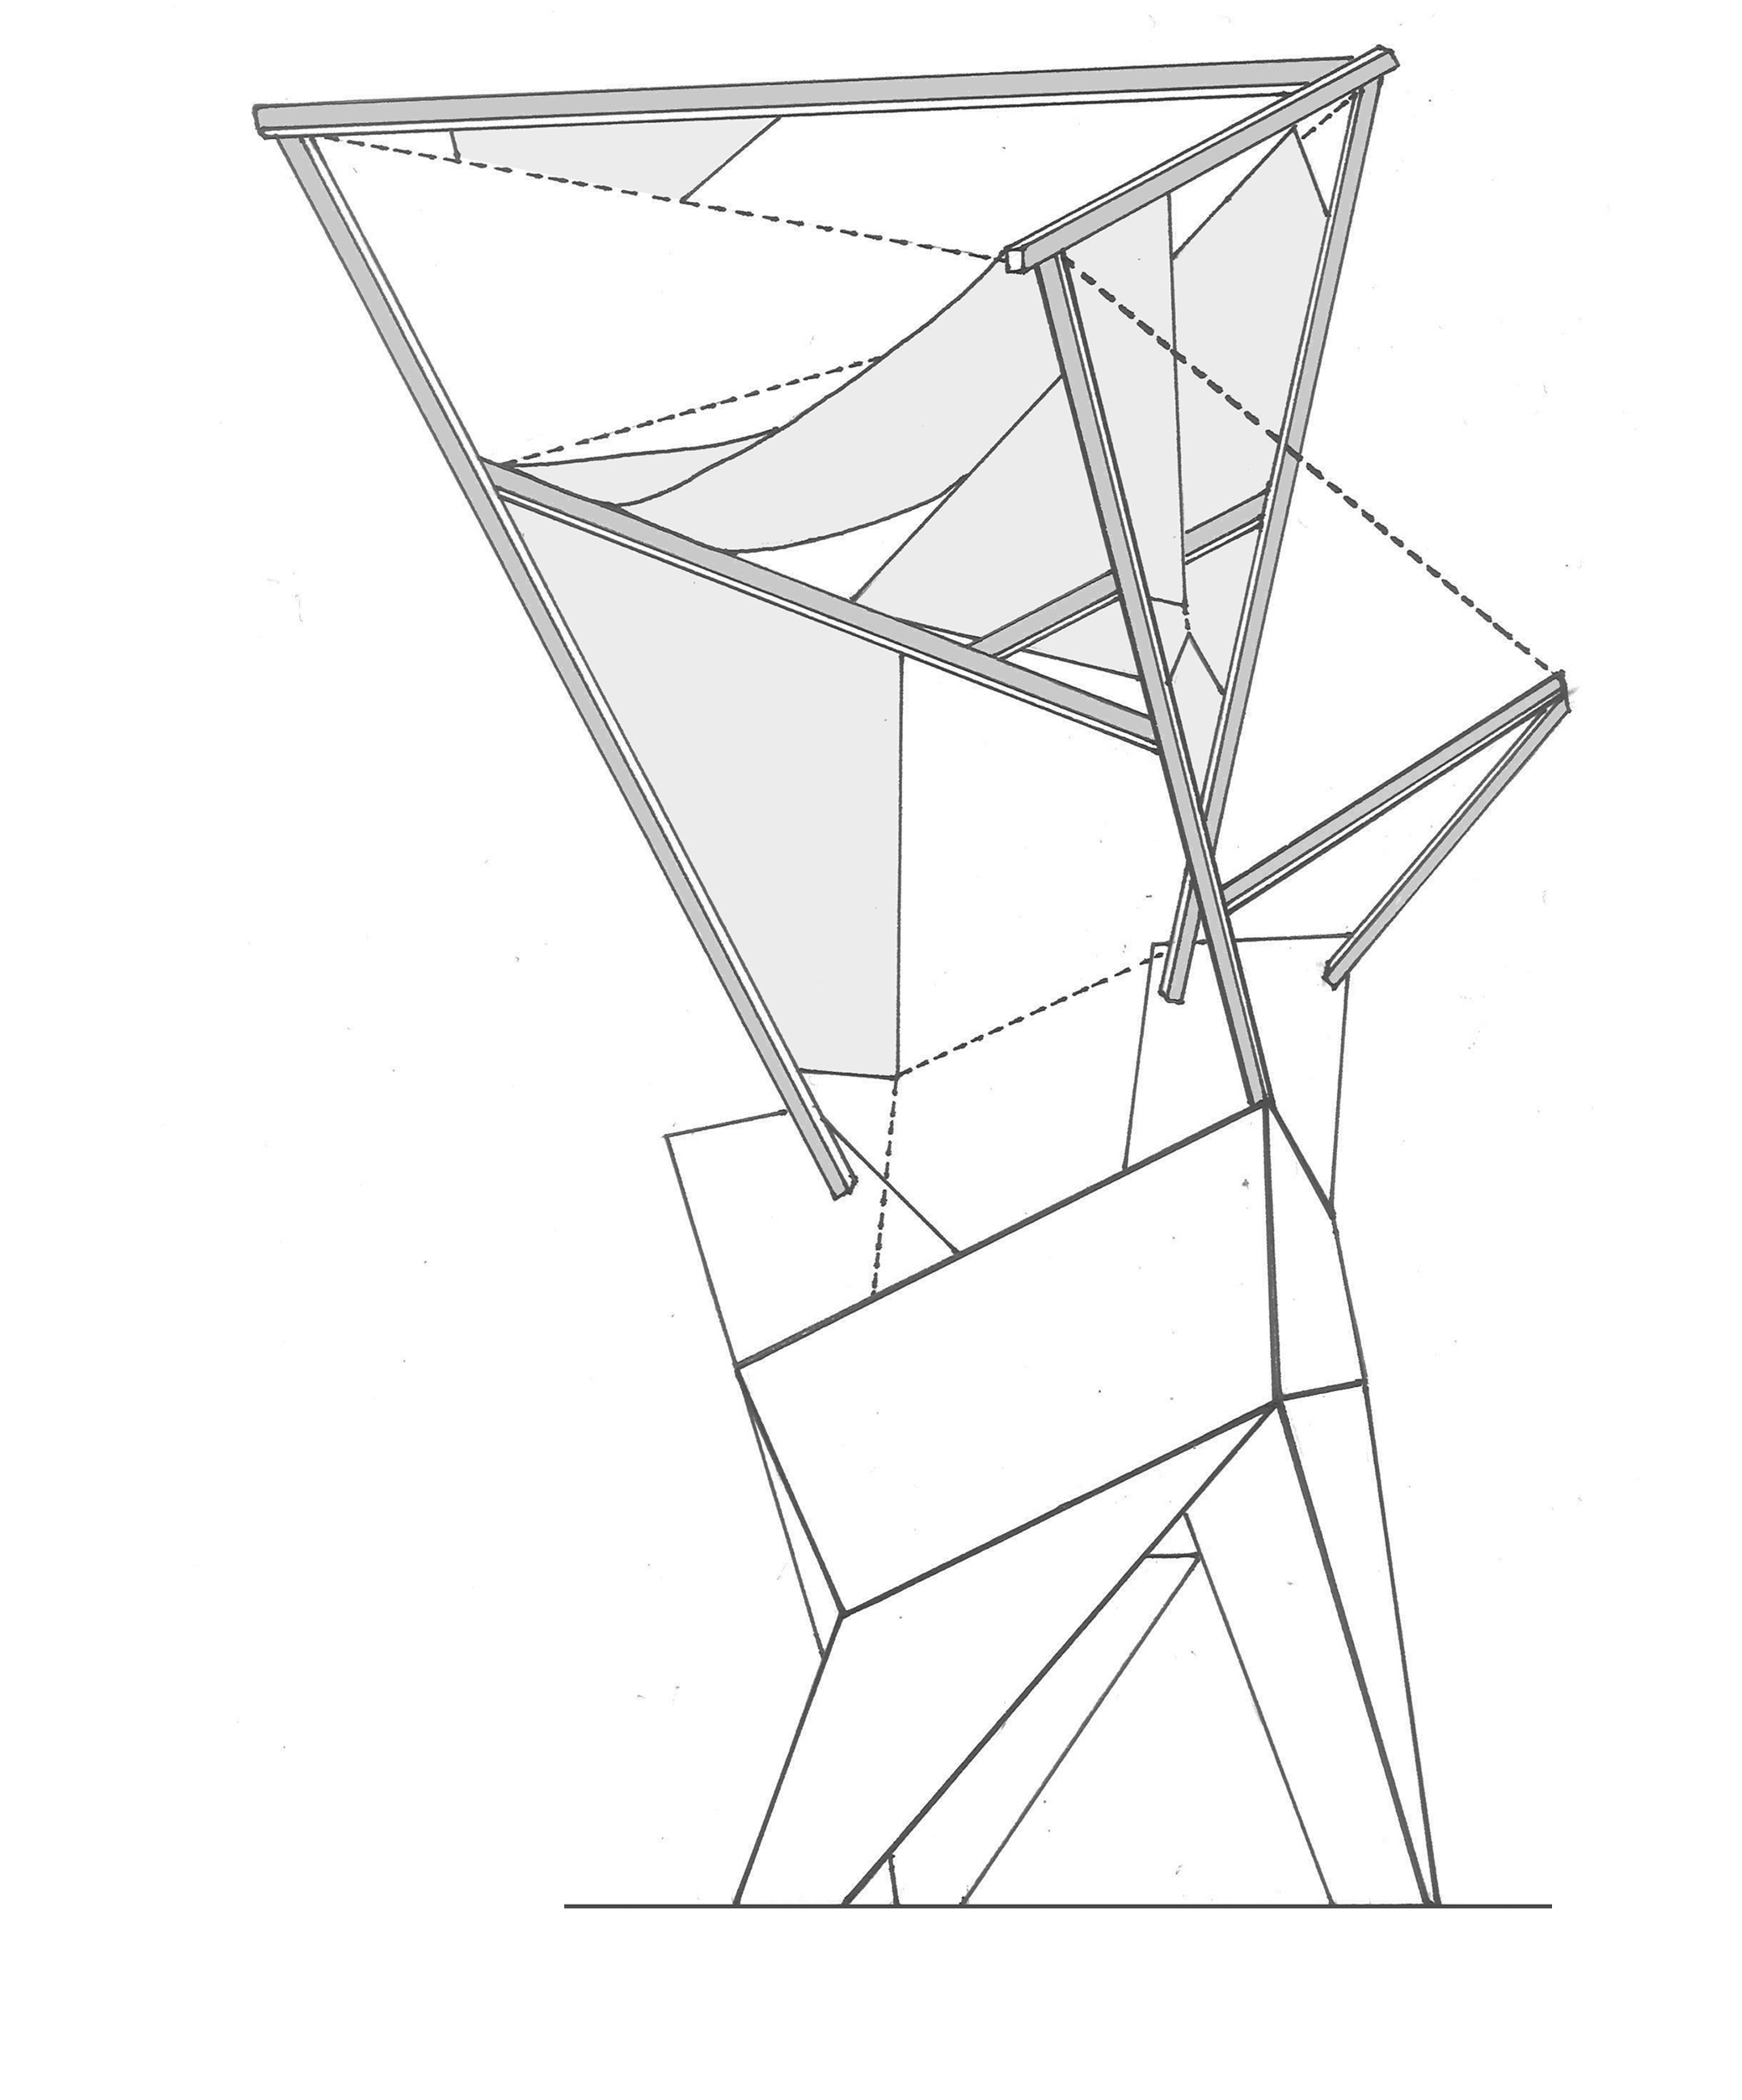 Can abstraction form architecture and can architecture form abstraction?  A drawing that seeks to explore abstract forms in architecture  - Contortion, Bath Yr 1